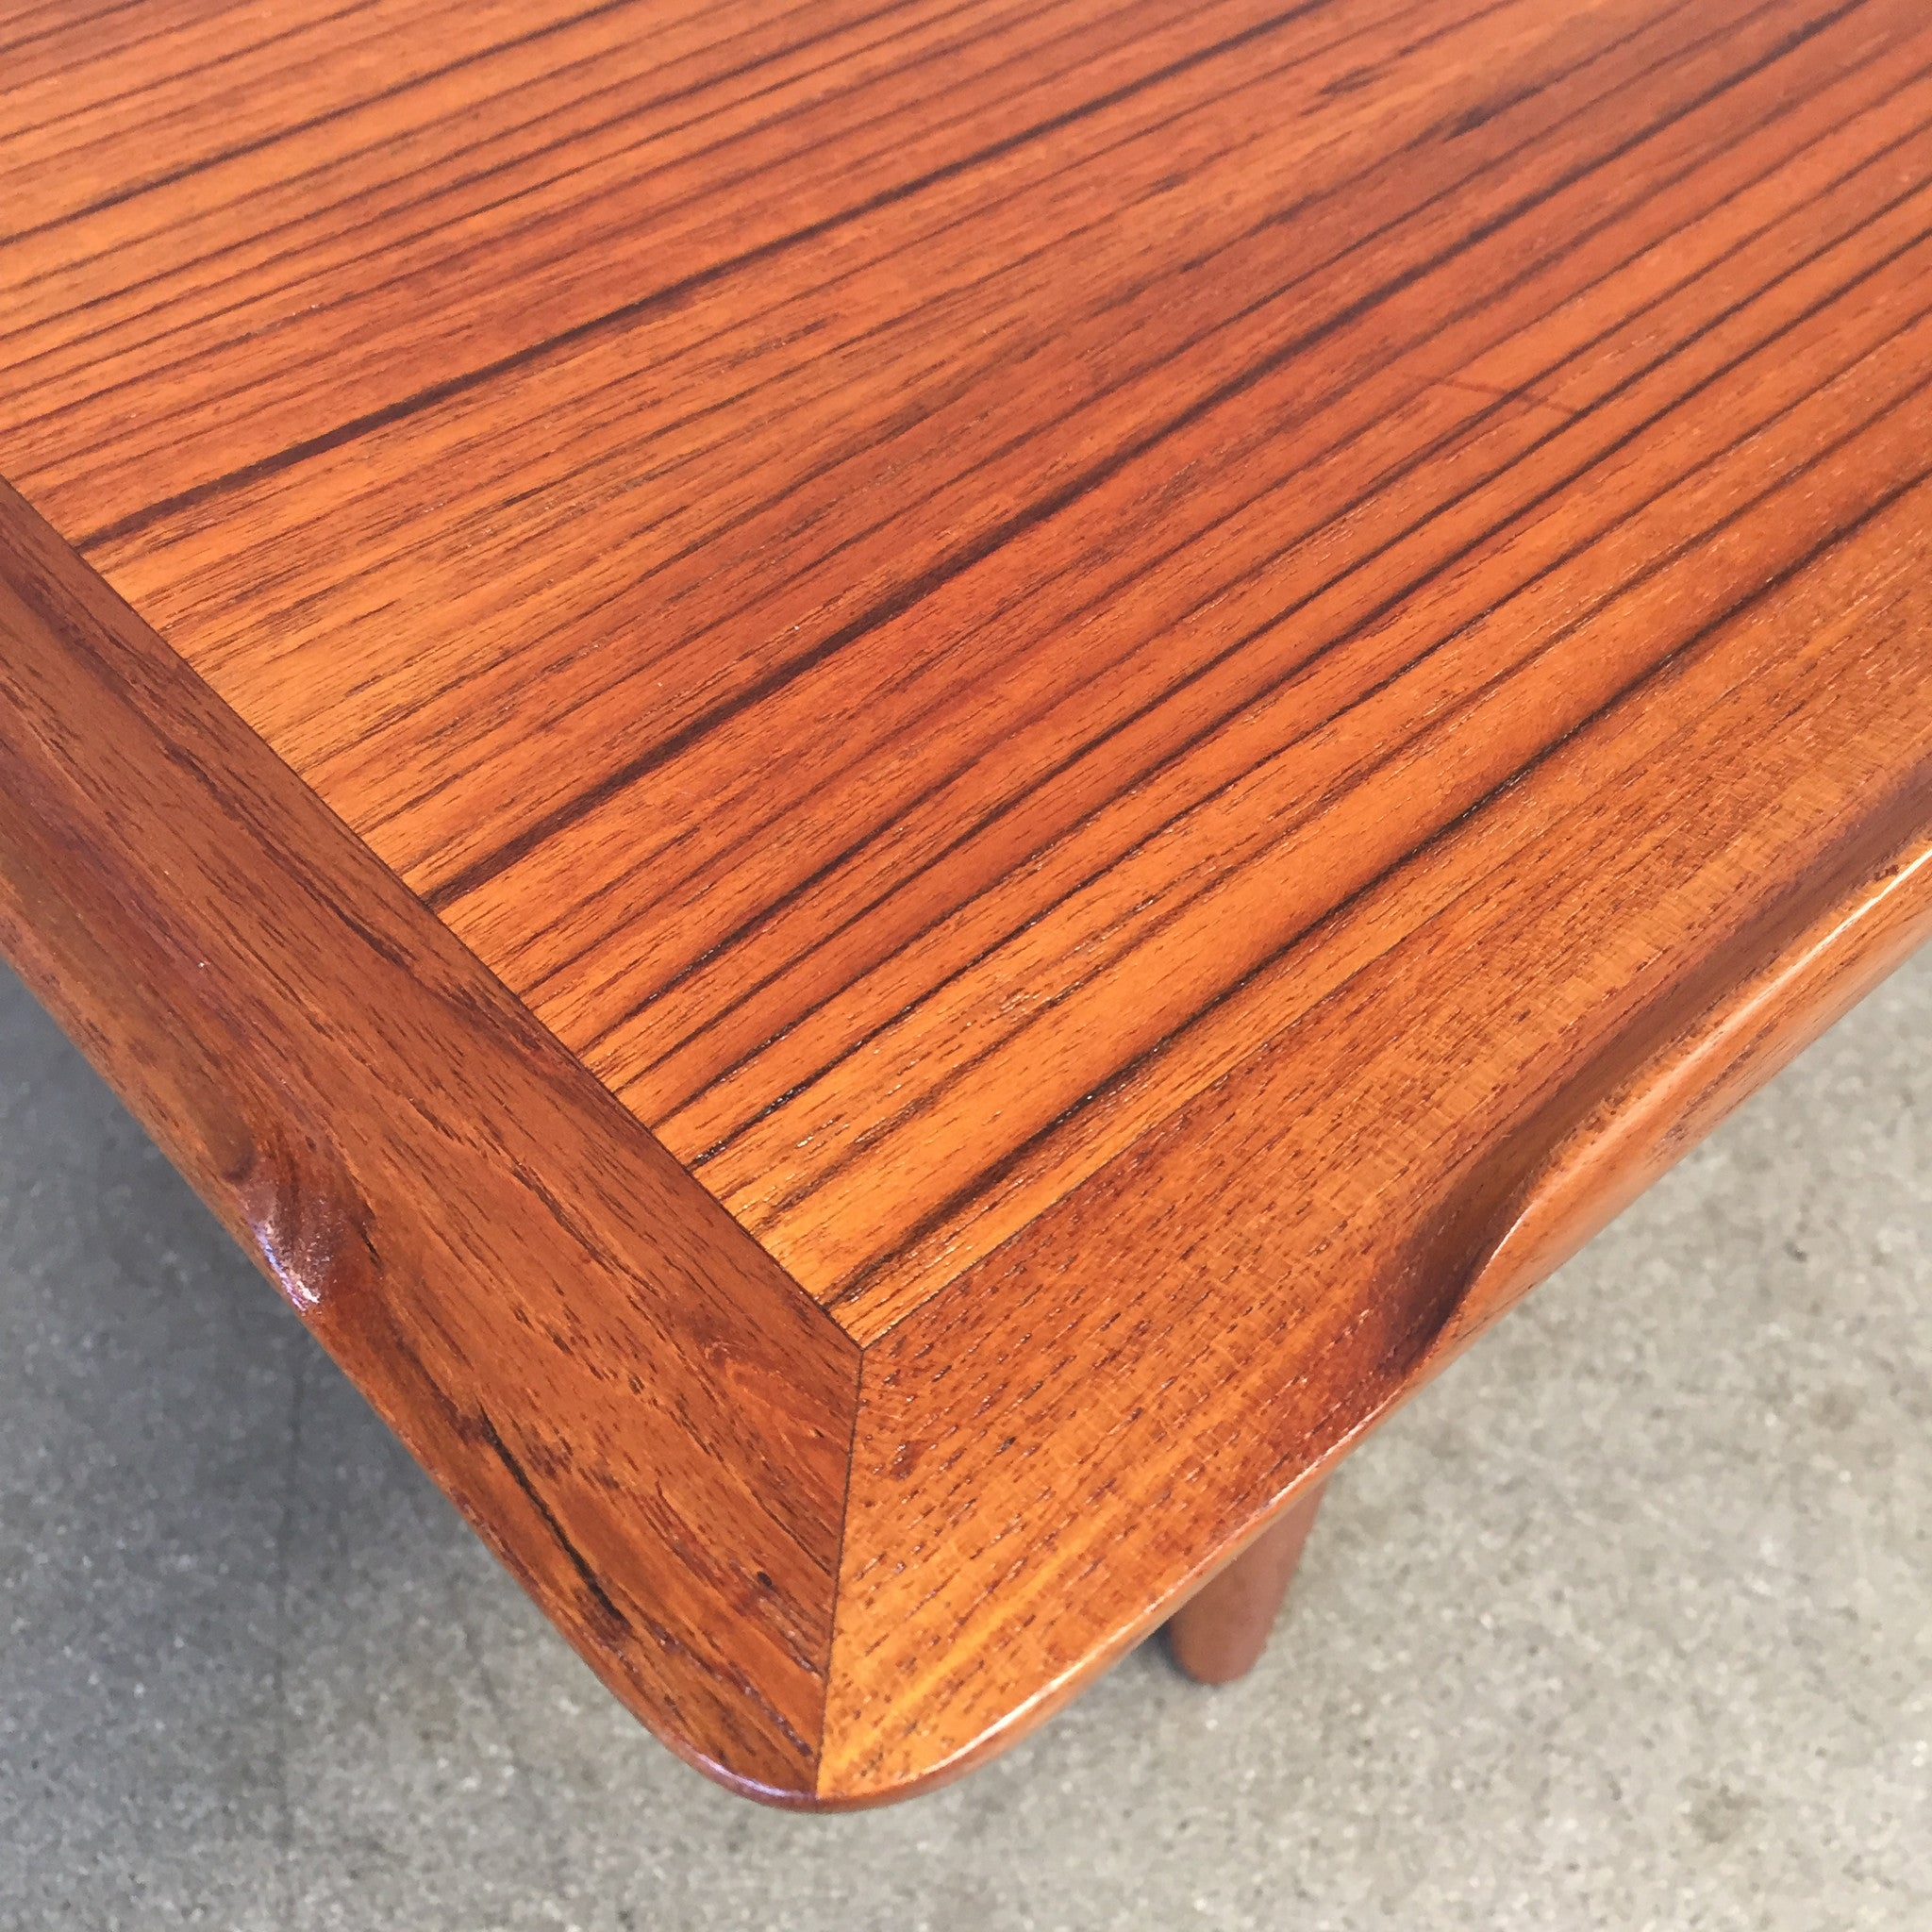 Danish Modern Teak Coffee Table by Poul Jensen for Selig